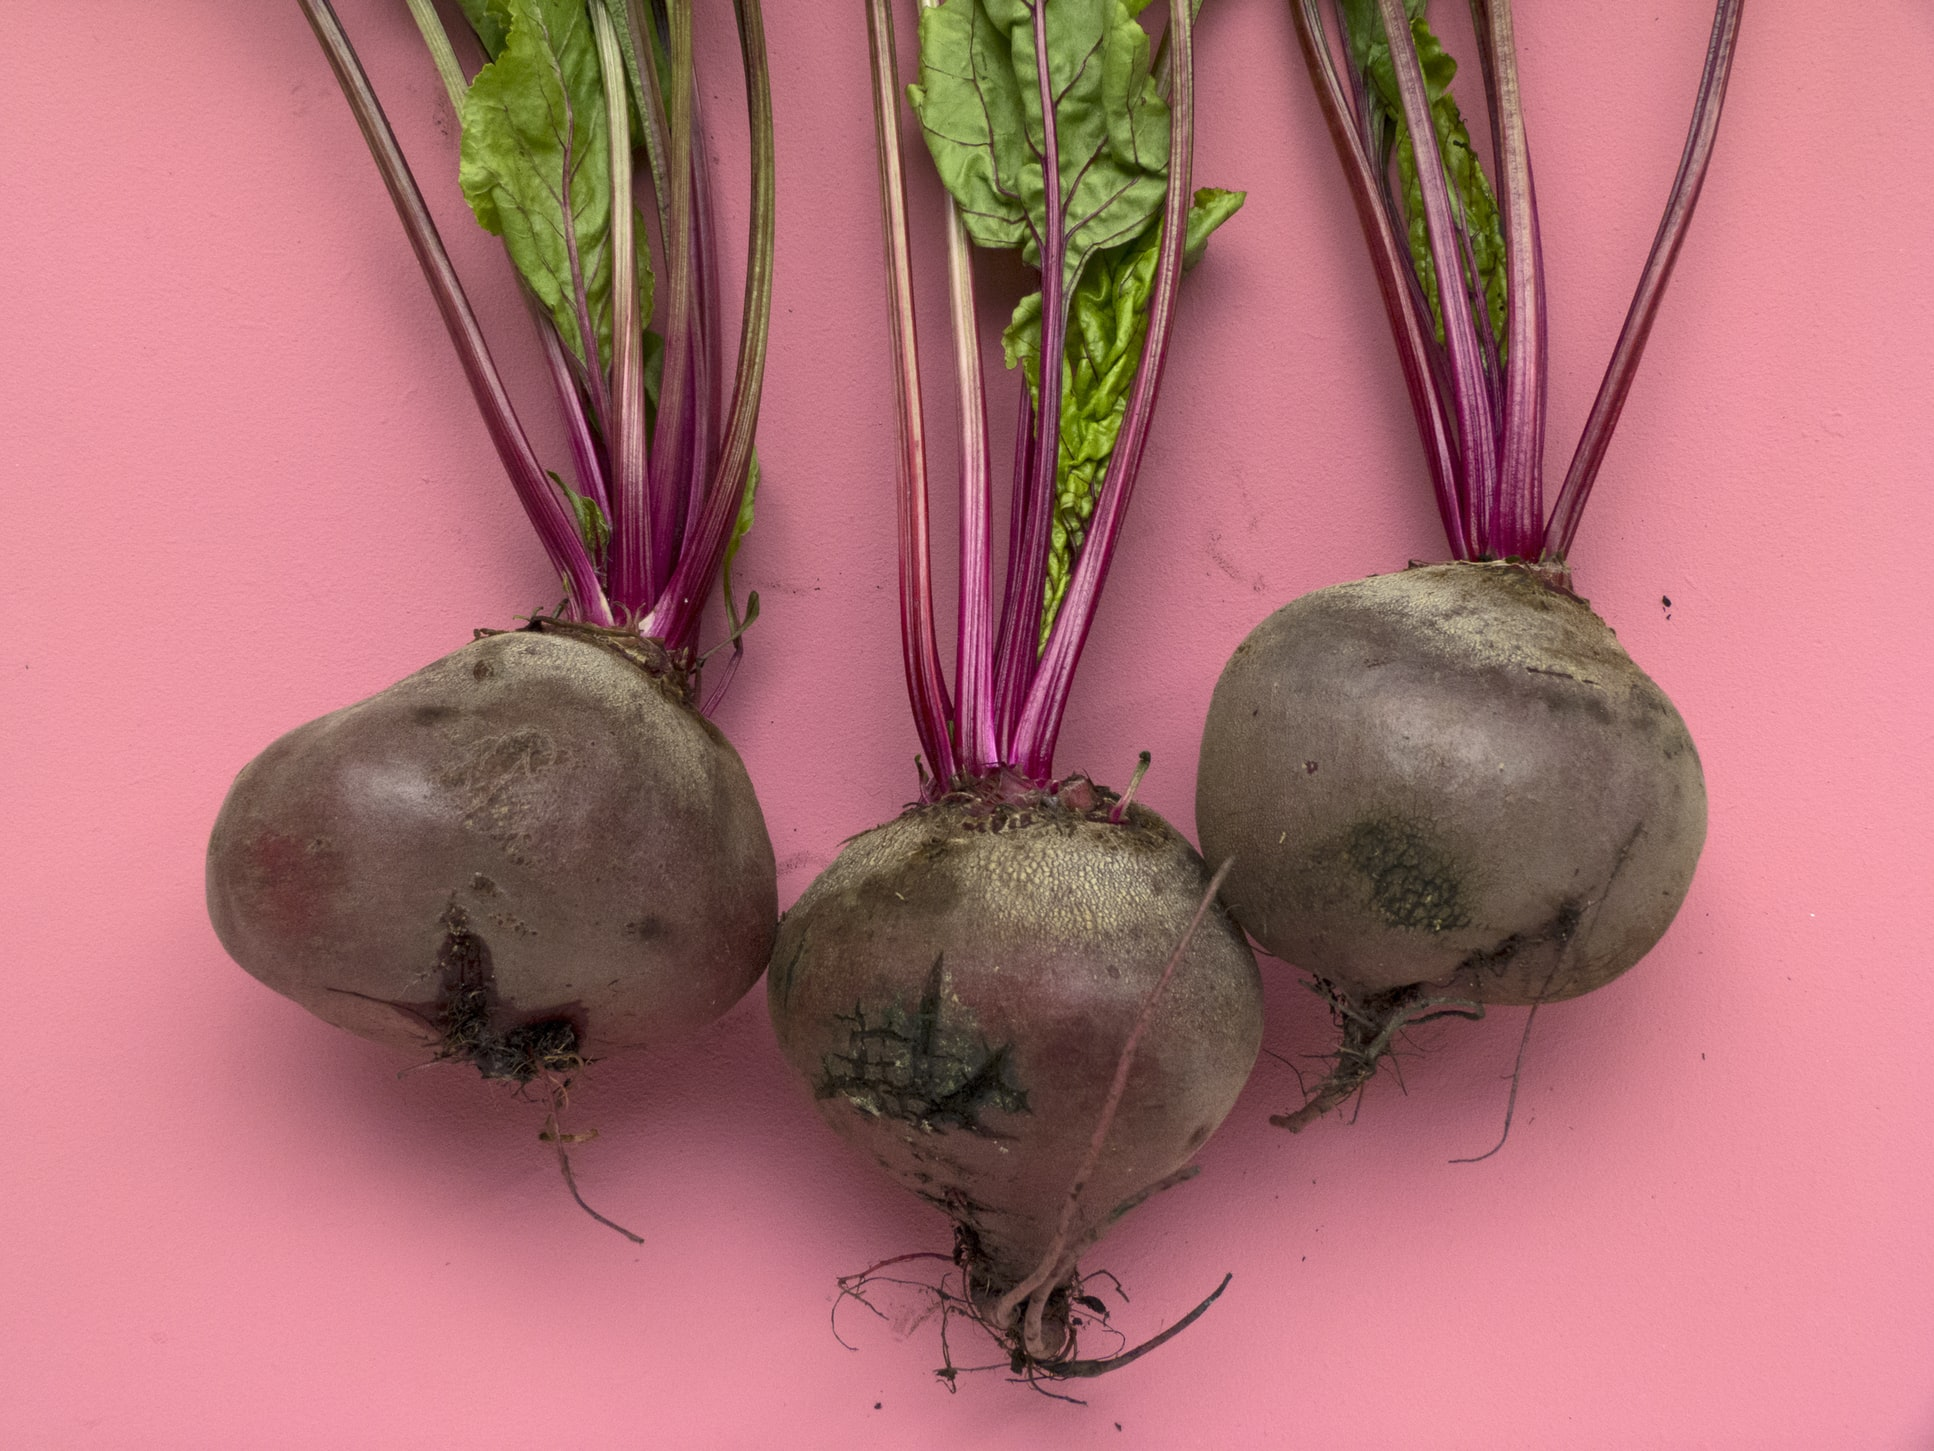 Growing Beet | Grow A Vegetable Garden With In Season Vegetables